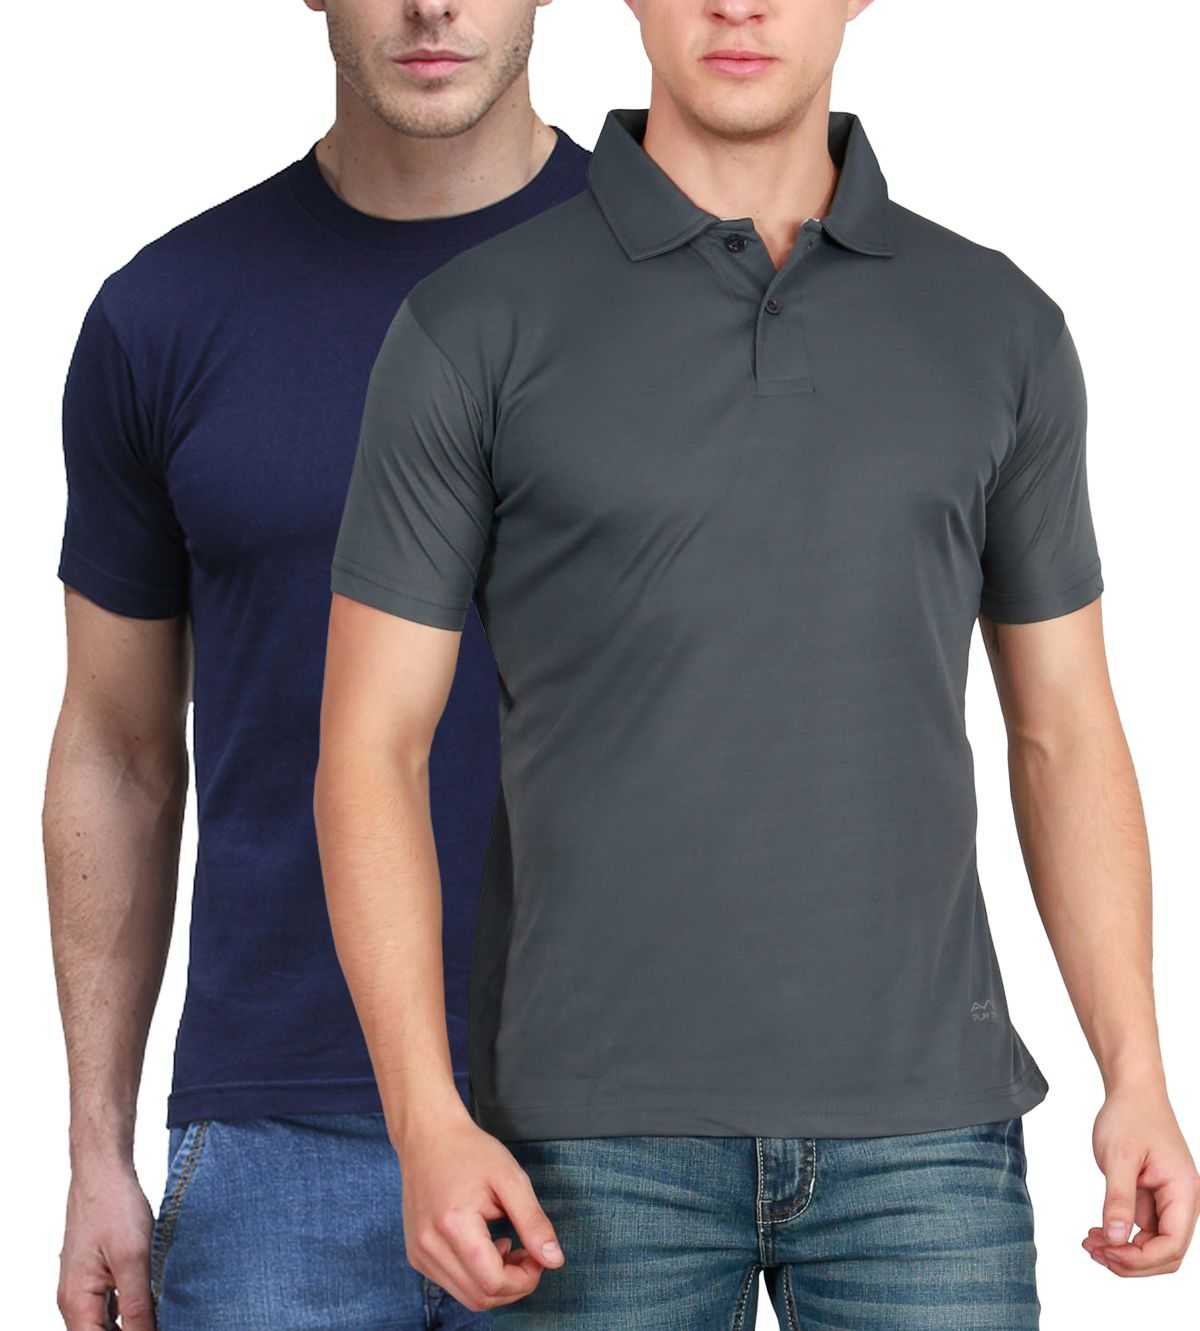 Scott International Multi Round T-Shirt Pack of 2